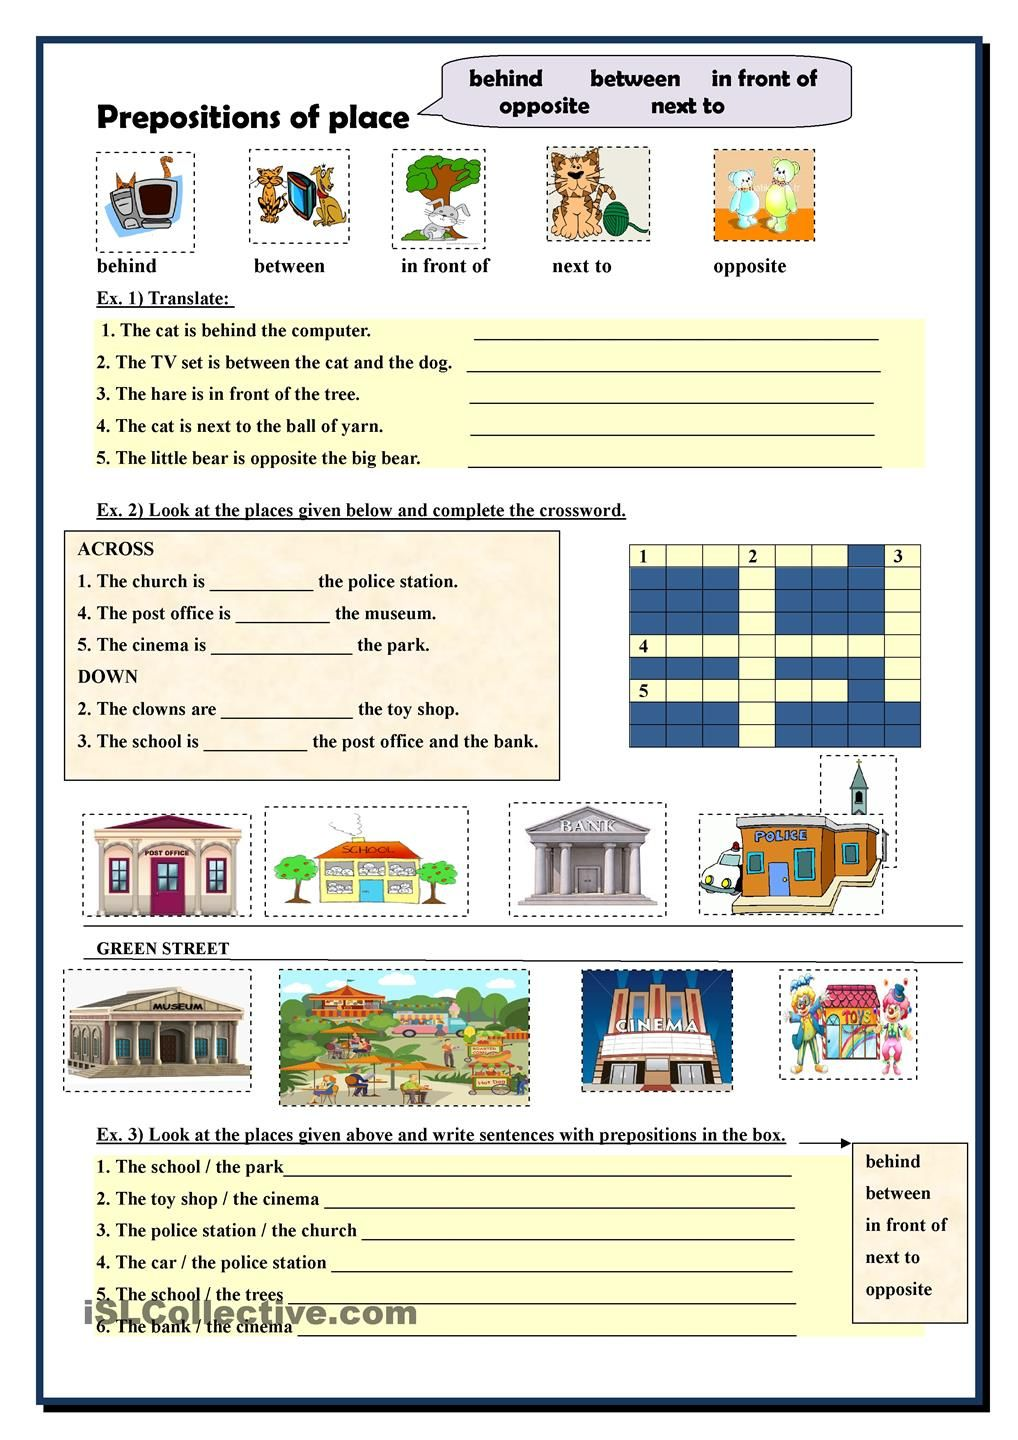 Prepositions of place | English worksheets | Pinterest ...